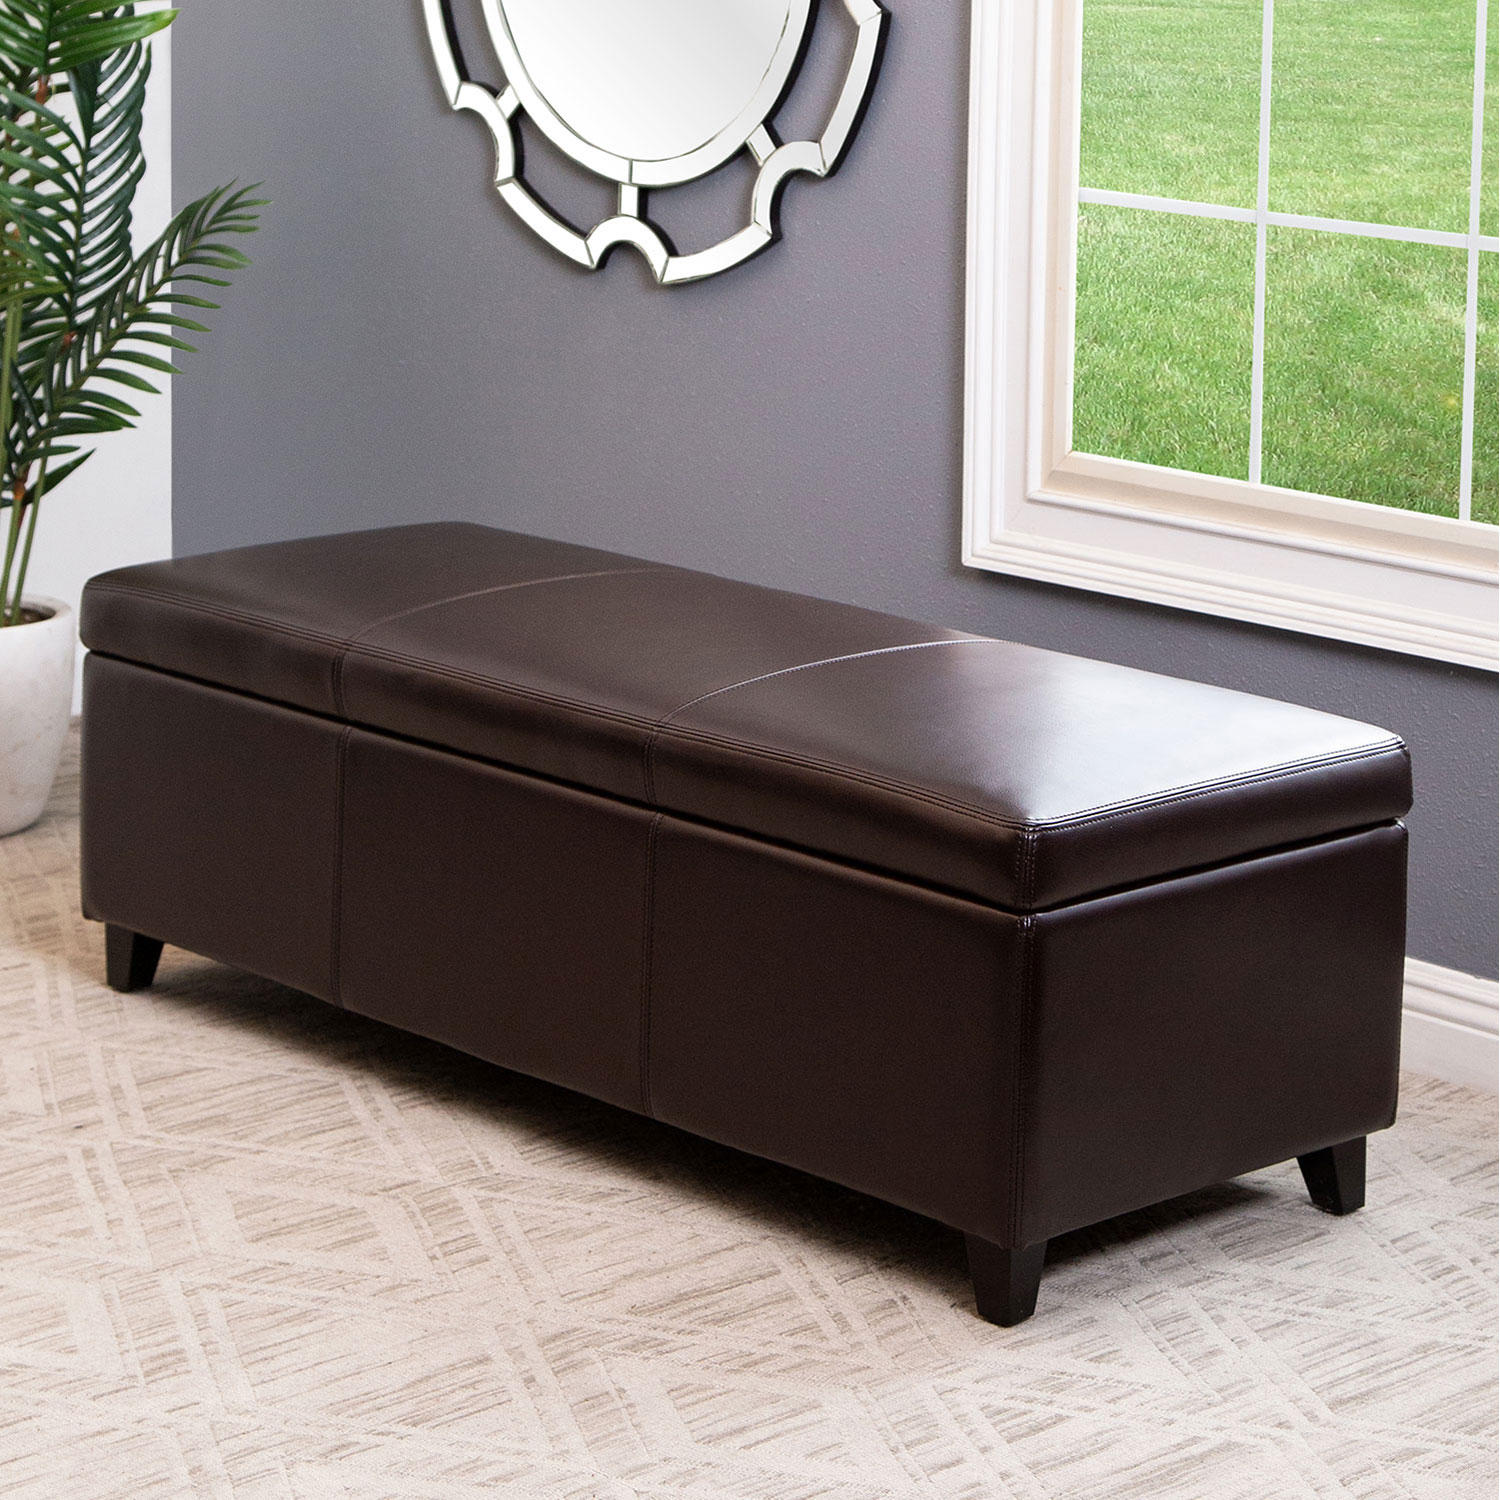 Abbyson Living Palmer Leather Storage Ottoman